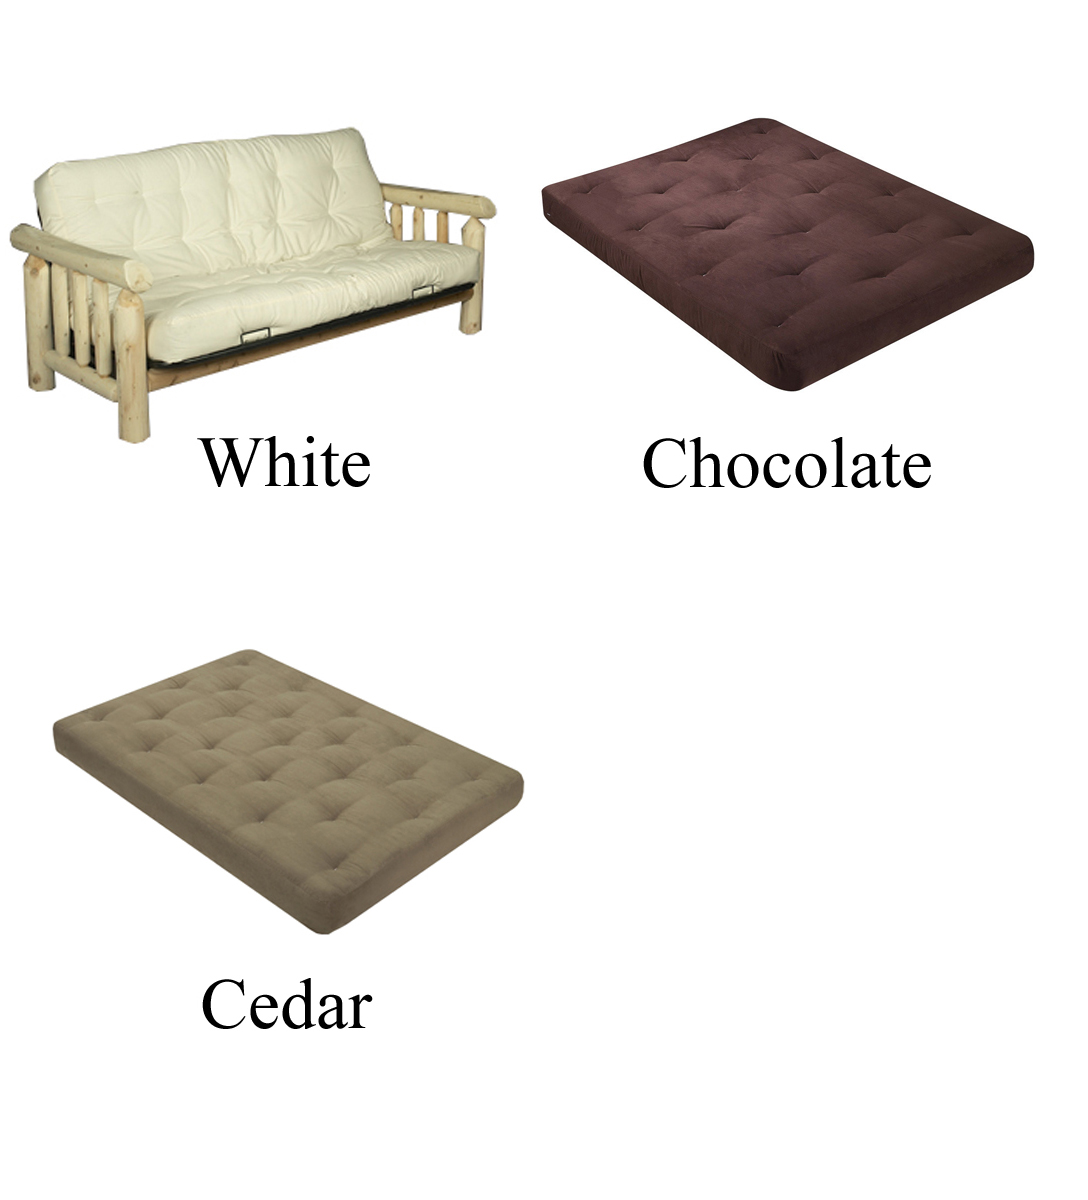 Medium image of     see mattress color options